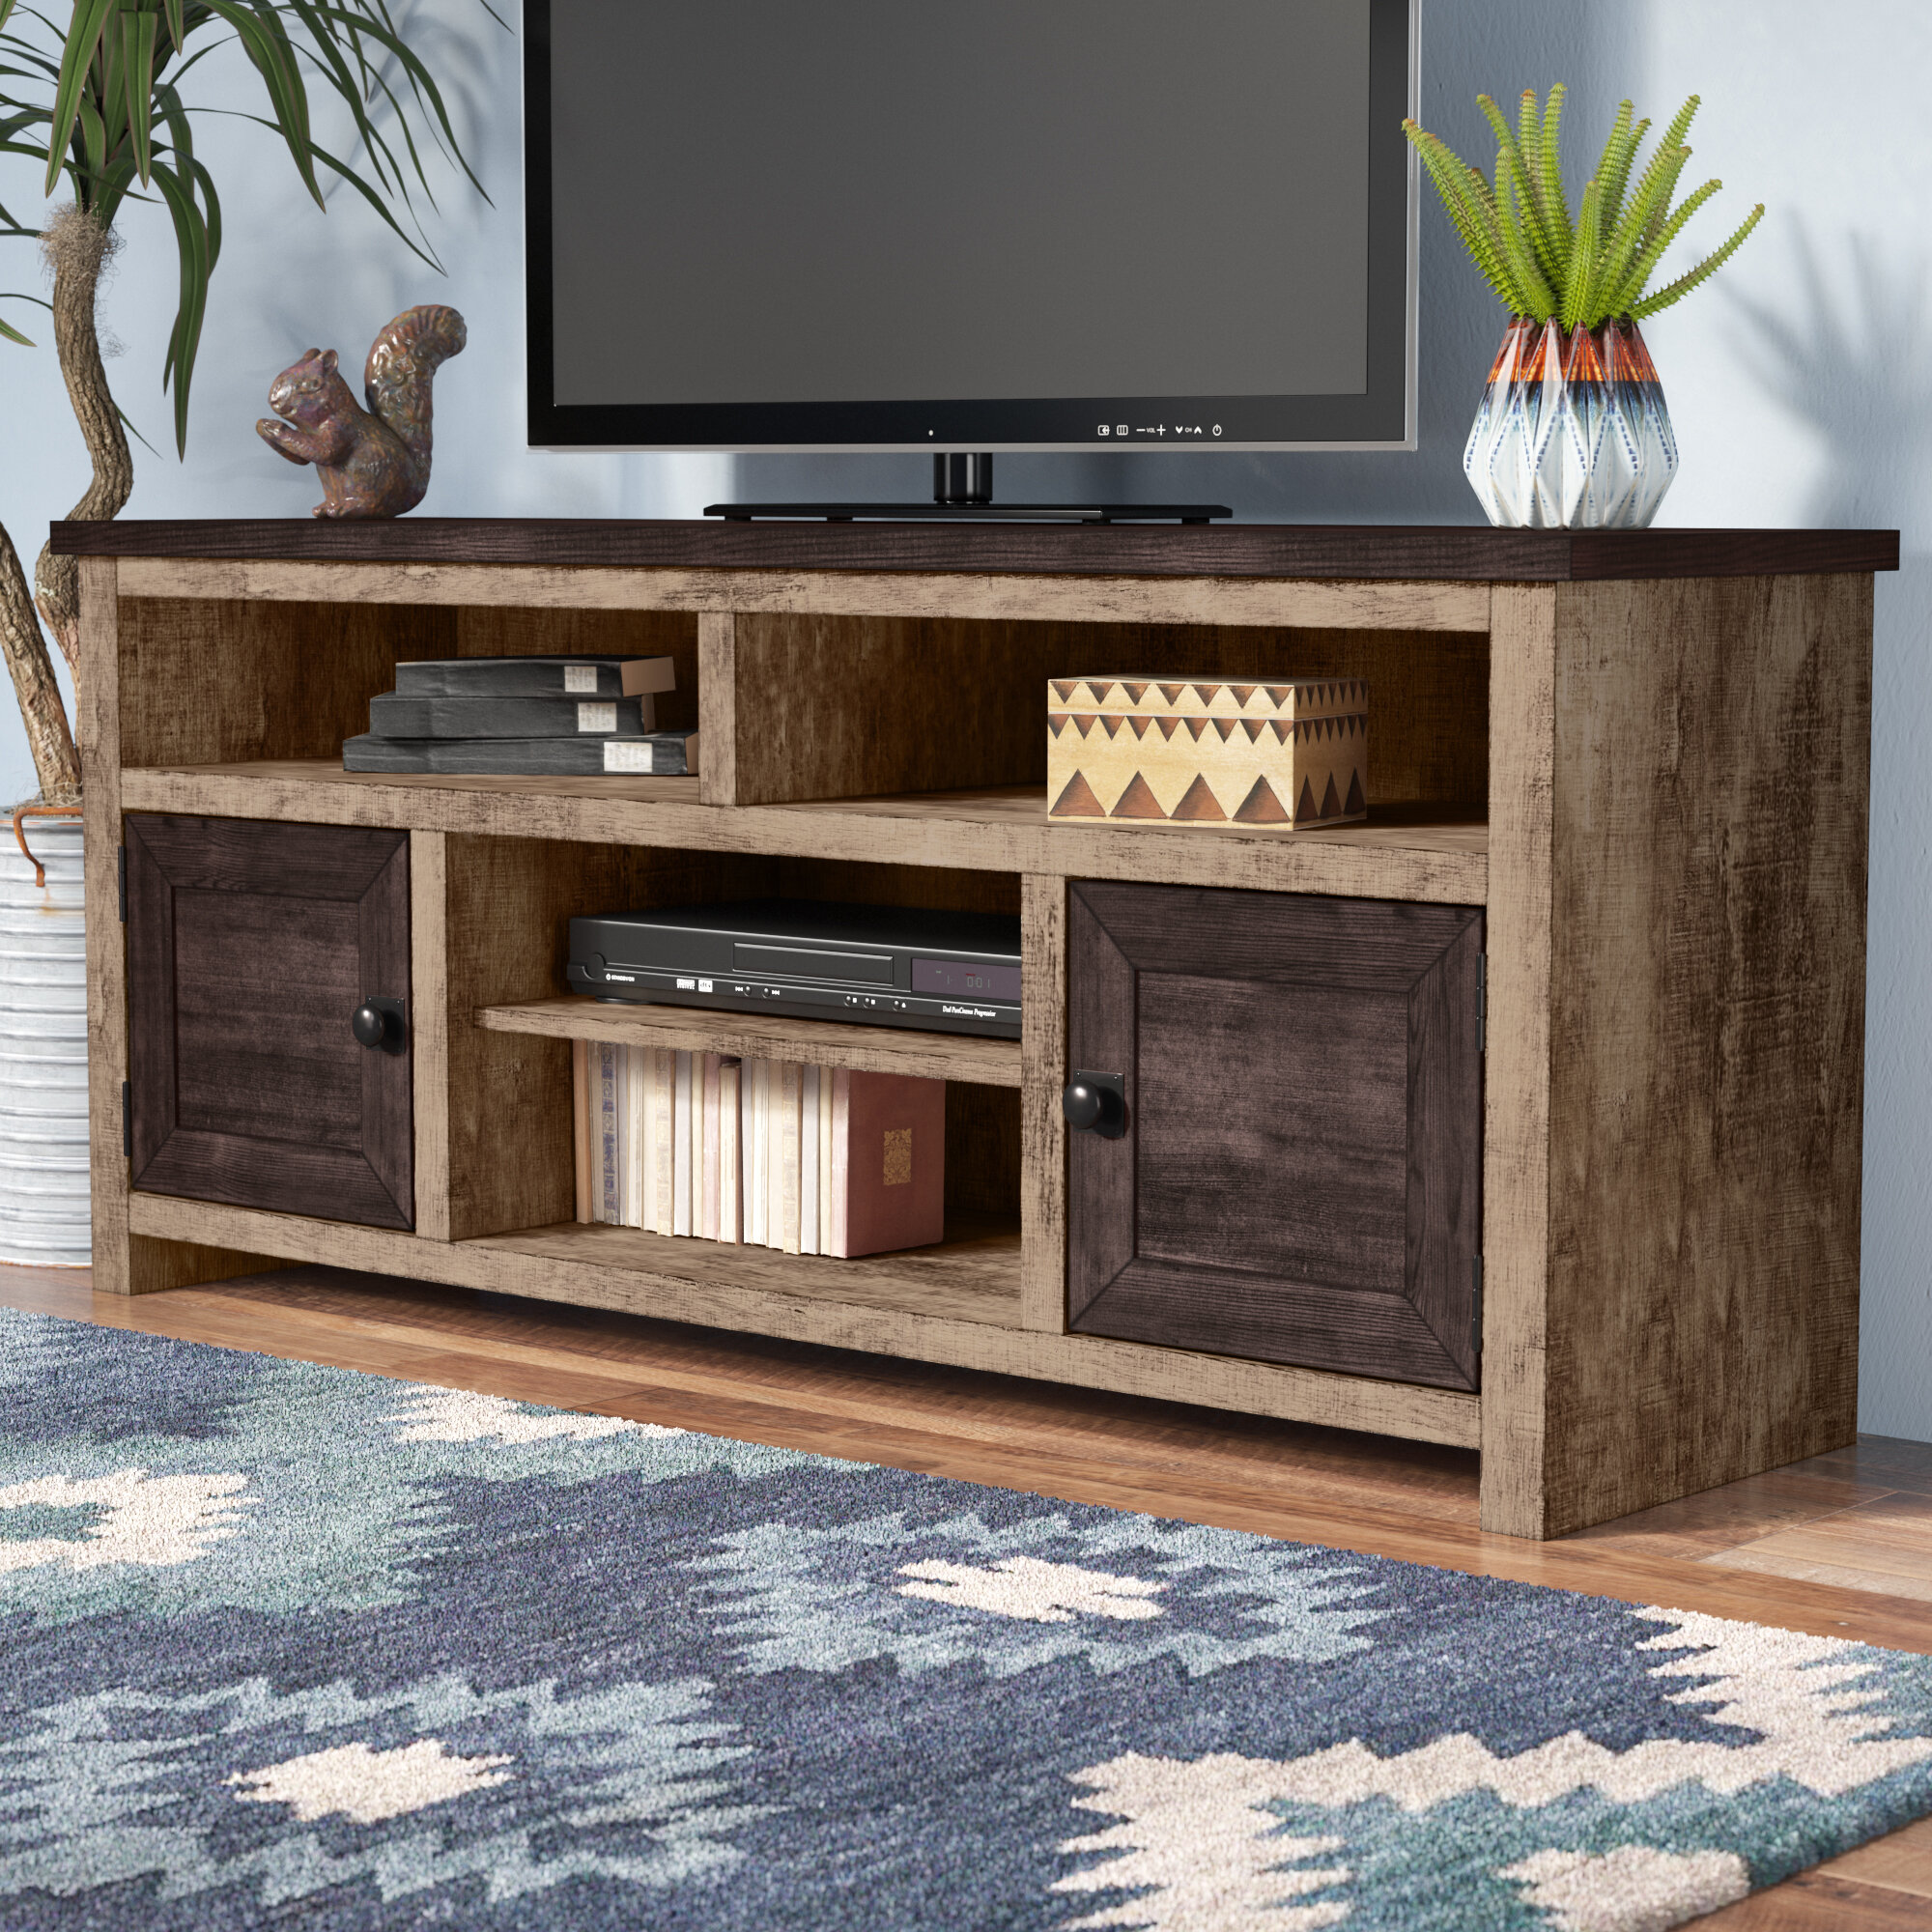 Union Rustic Redd Tv Stand For Tvs Up To 60 Reviews Wayfair